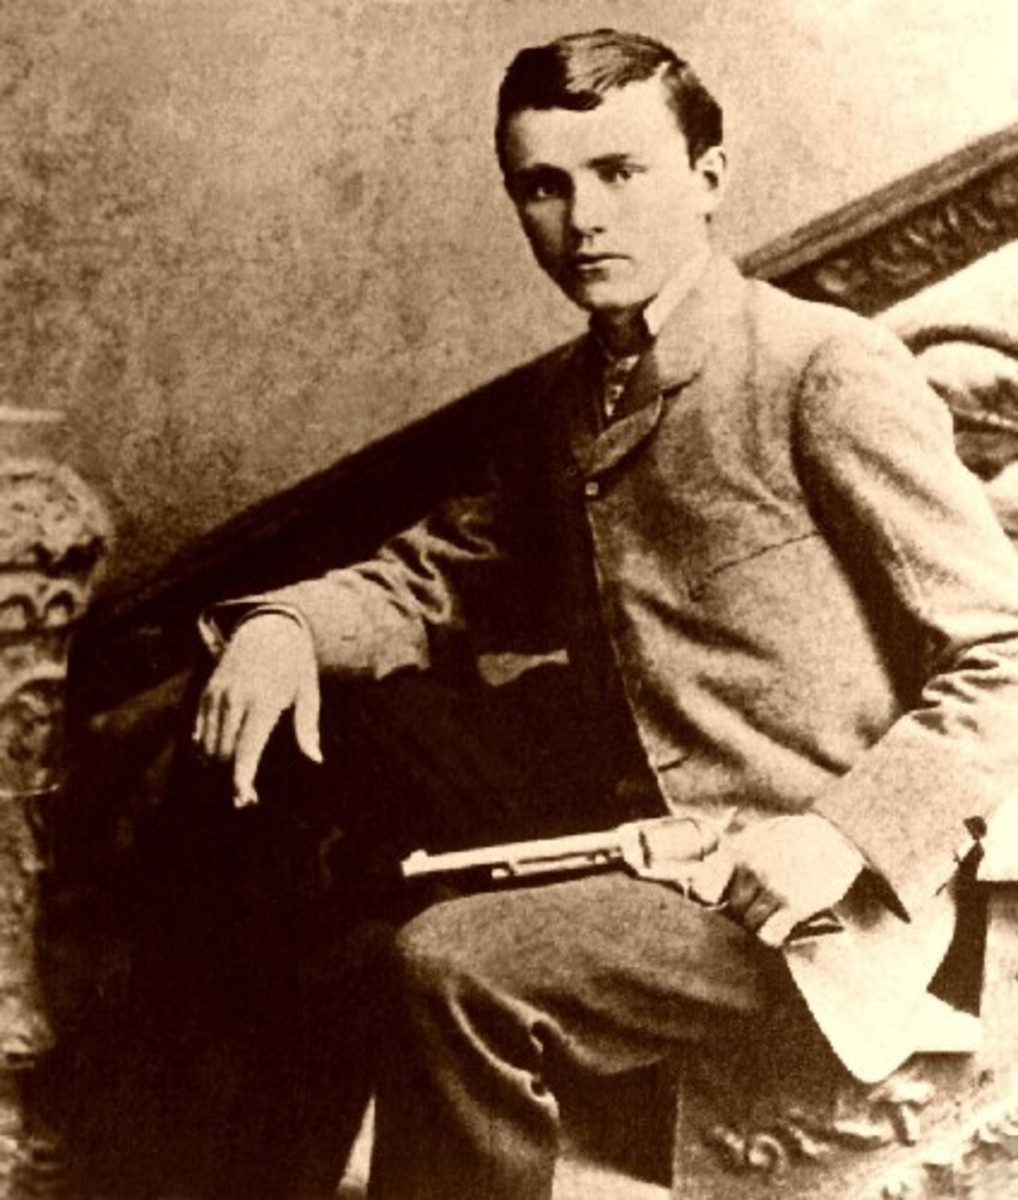 The outlaw Robert Ford, who lived from 1860 to 1892, in an undated photograph by an unknown author reportedly posing with the weapon he used to assassinate Jesse James.